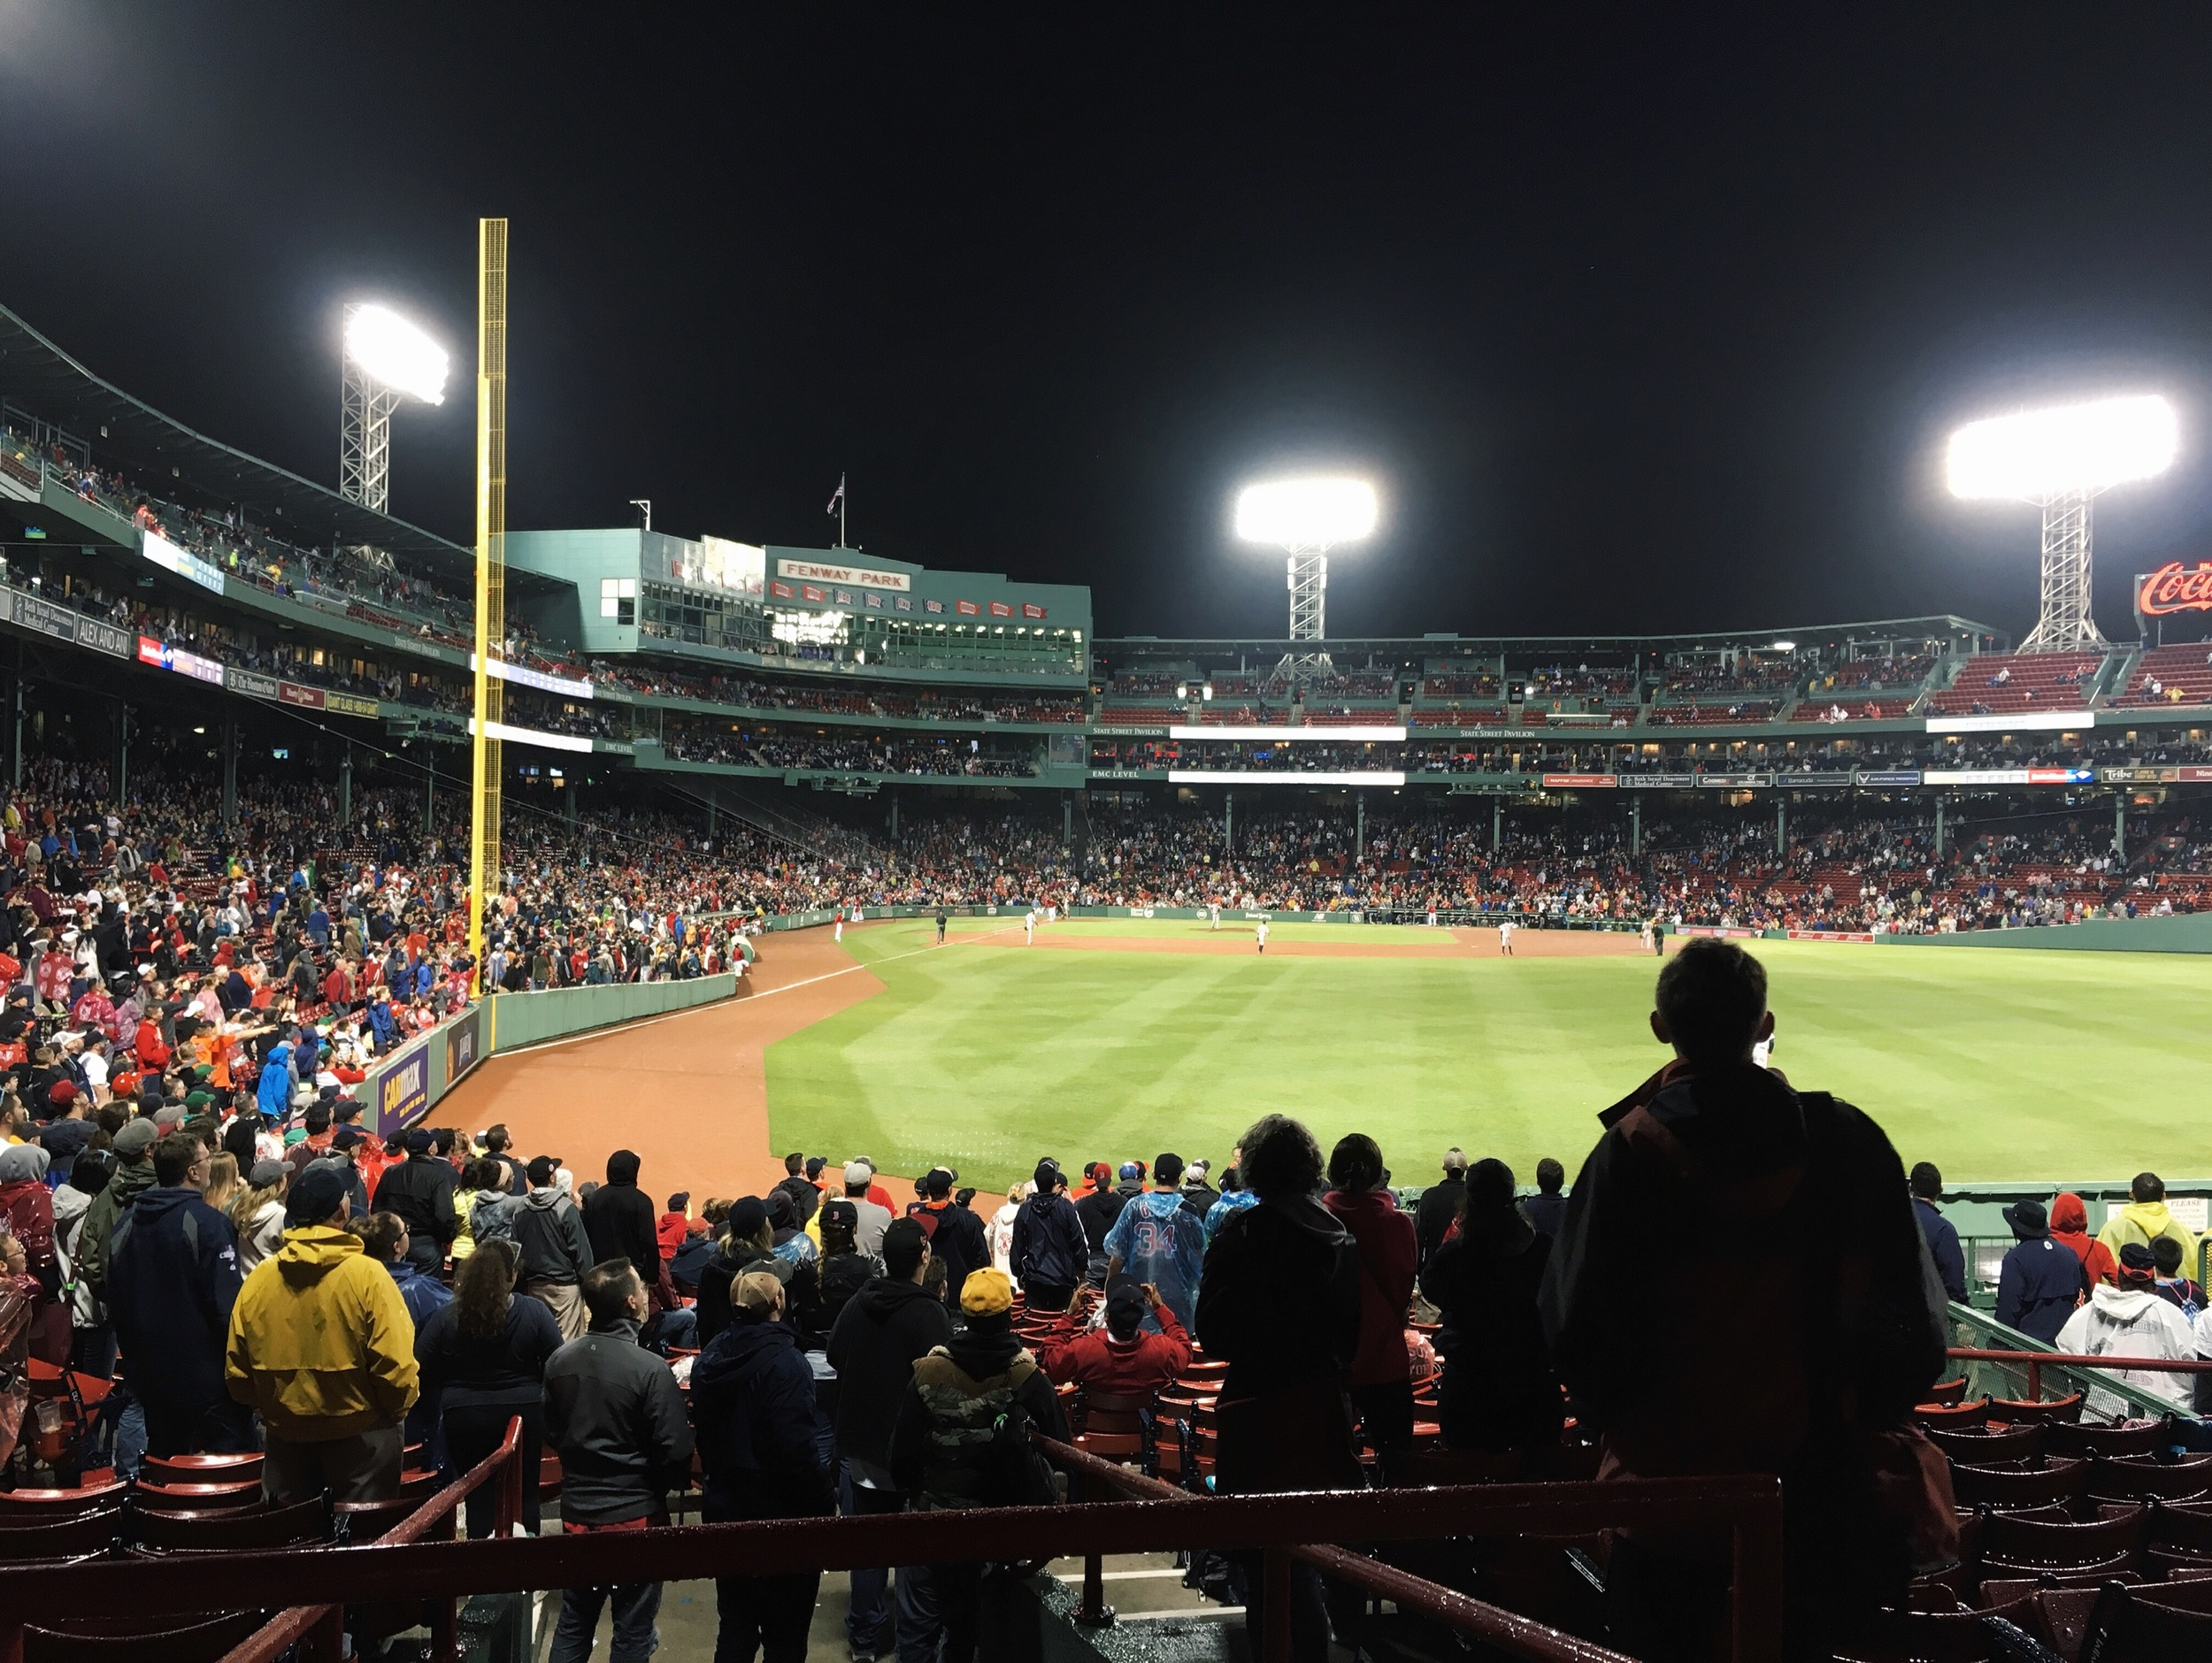 The final pitch of the game went to Big Papi, and everyone crowded around the field.